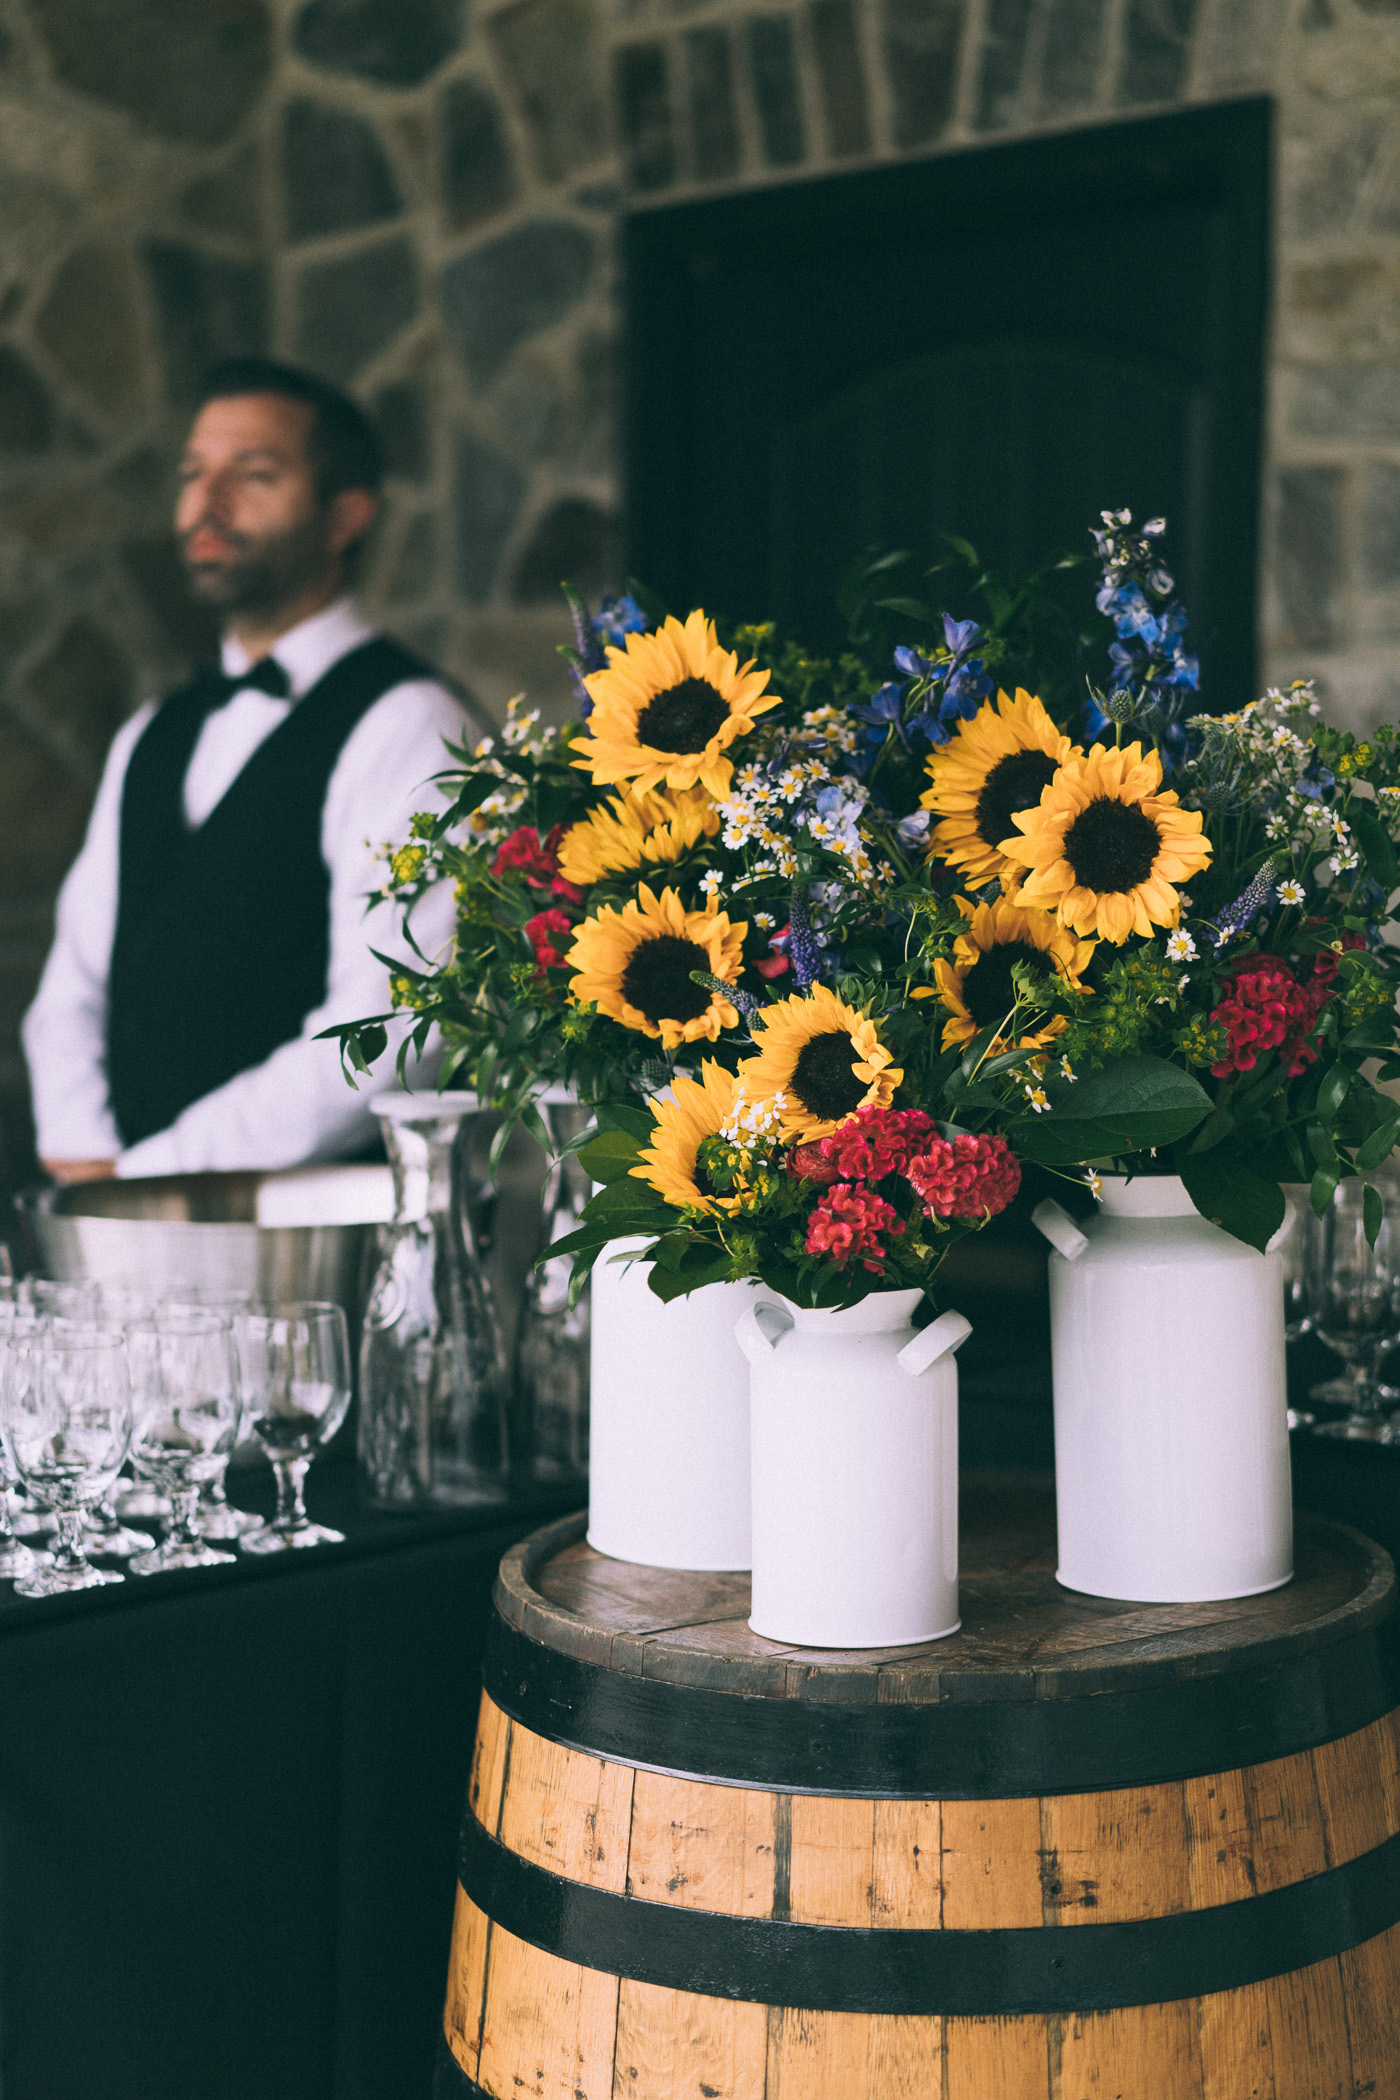 sunflowers at thebar.jpg